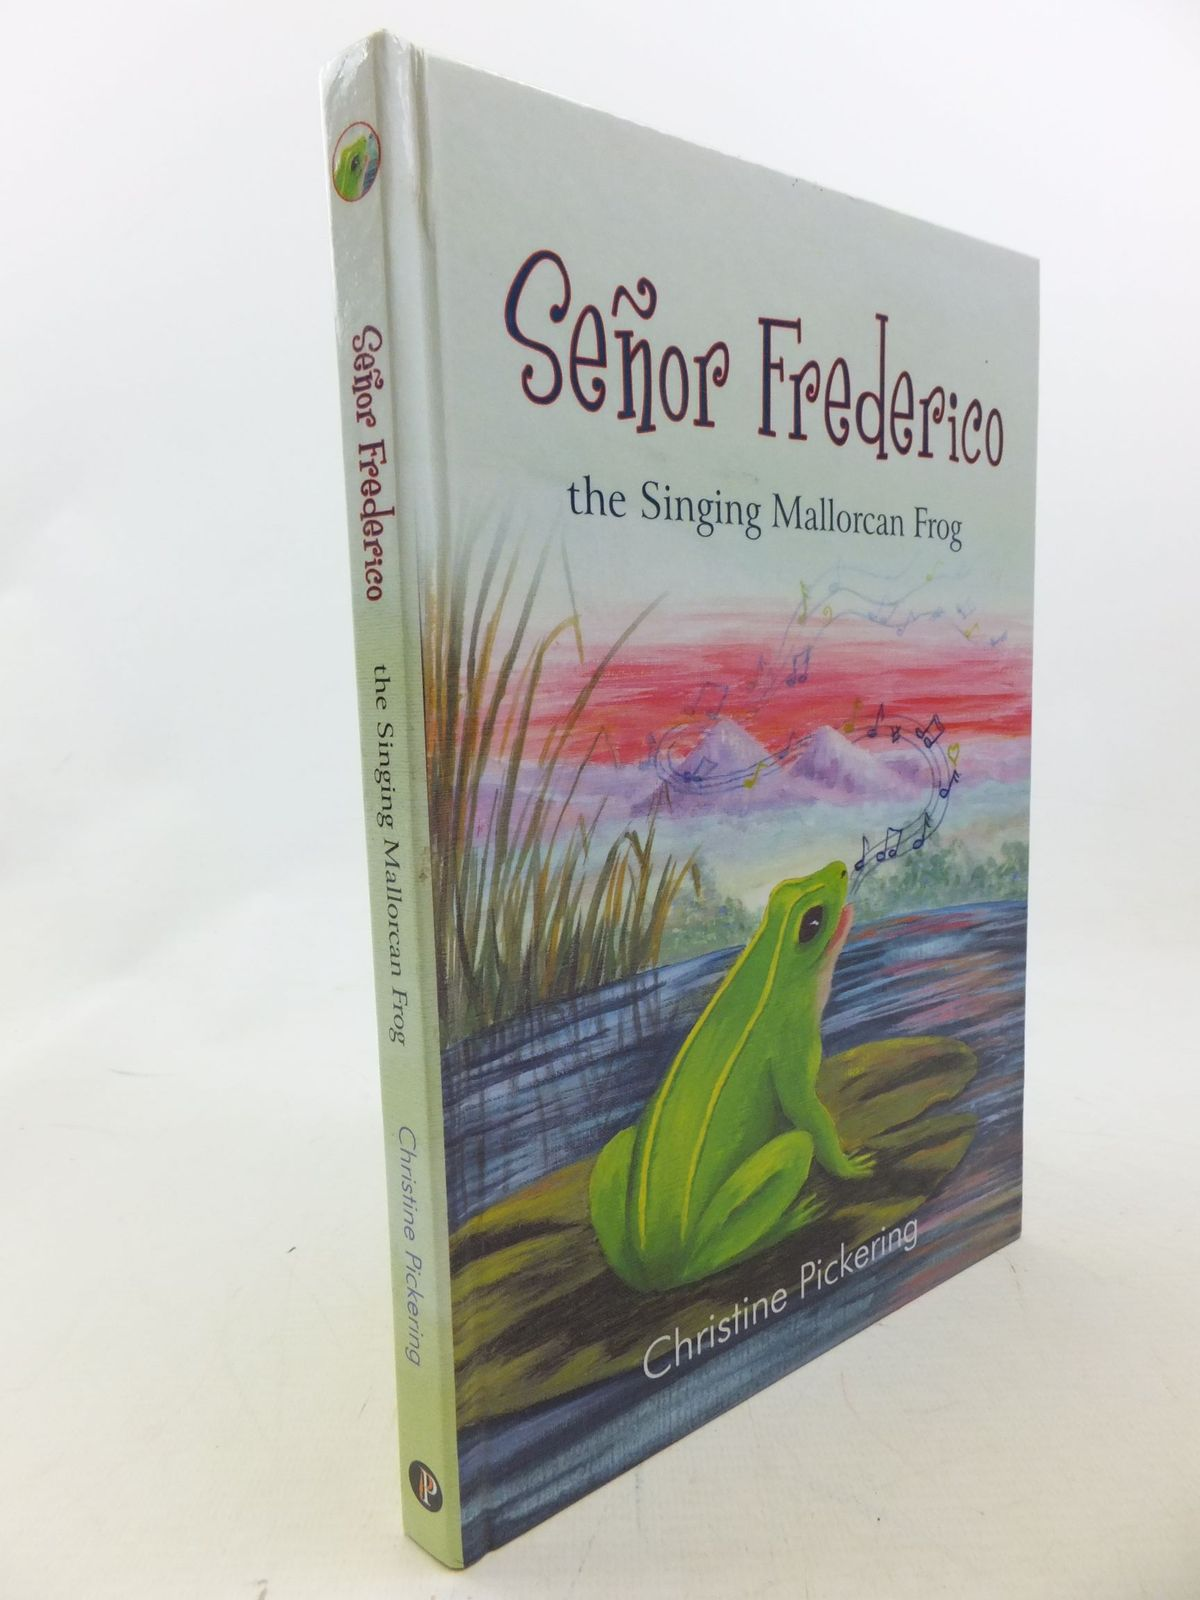 Photo of SENOR FREDERICO - THE SINGING, MALLORCAN FROG written by Pickering, Christine Margaret illustrated by Pickering, Christine Margaret published by Pen Press (STOCK CODE: 2114182)  for sale by Stella & Rose's Books